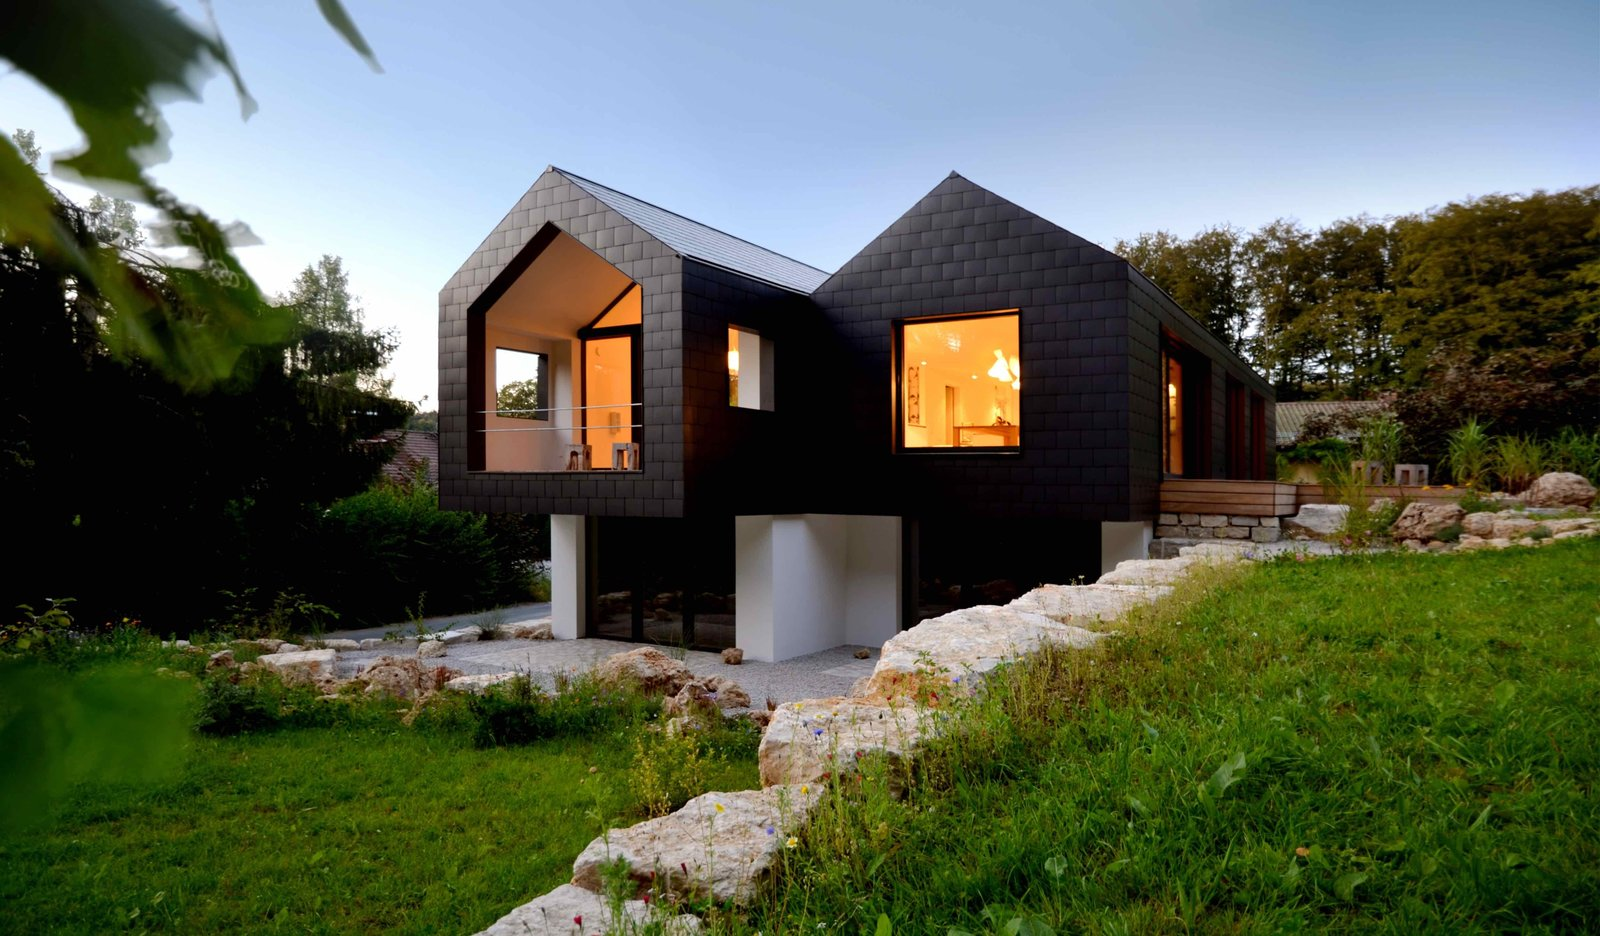 Tagged: Outdoor, Front Yard, Trees, Stone Patio, Porch, Deck, Boulders, and Grass.  Refugium Betzenstein by Dwell from Escape to a Bio-Passive Vacation Refuge in a Bavarian Nature Park